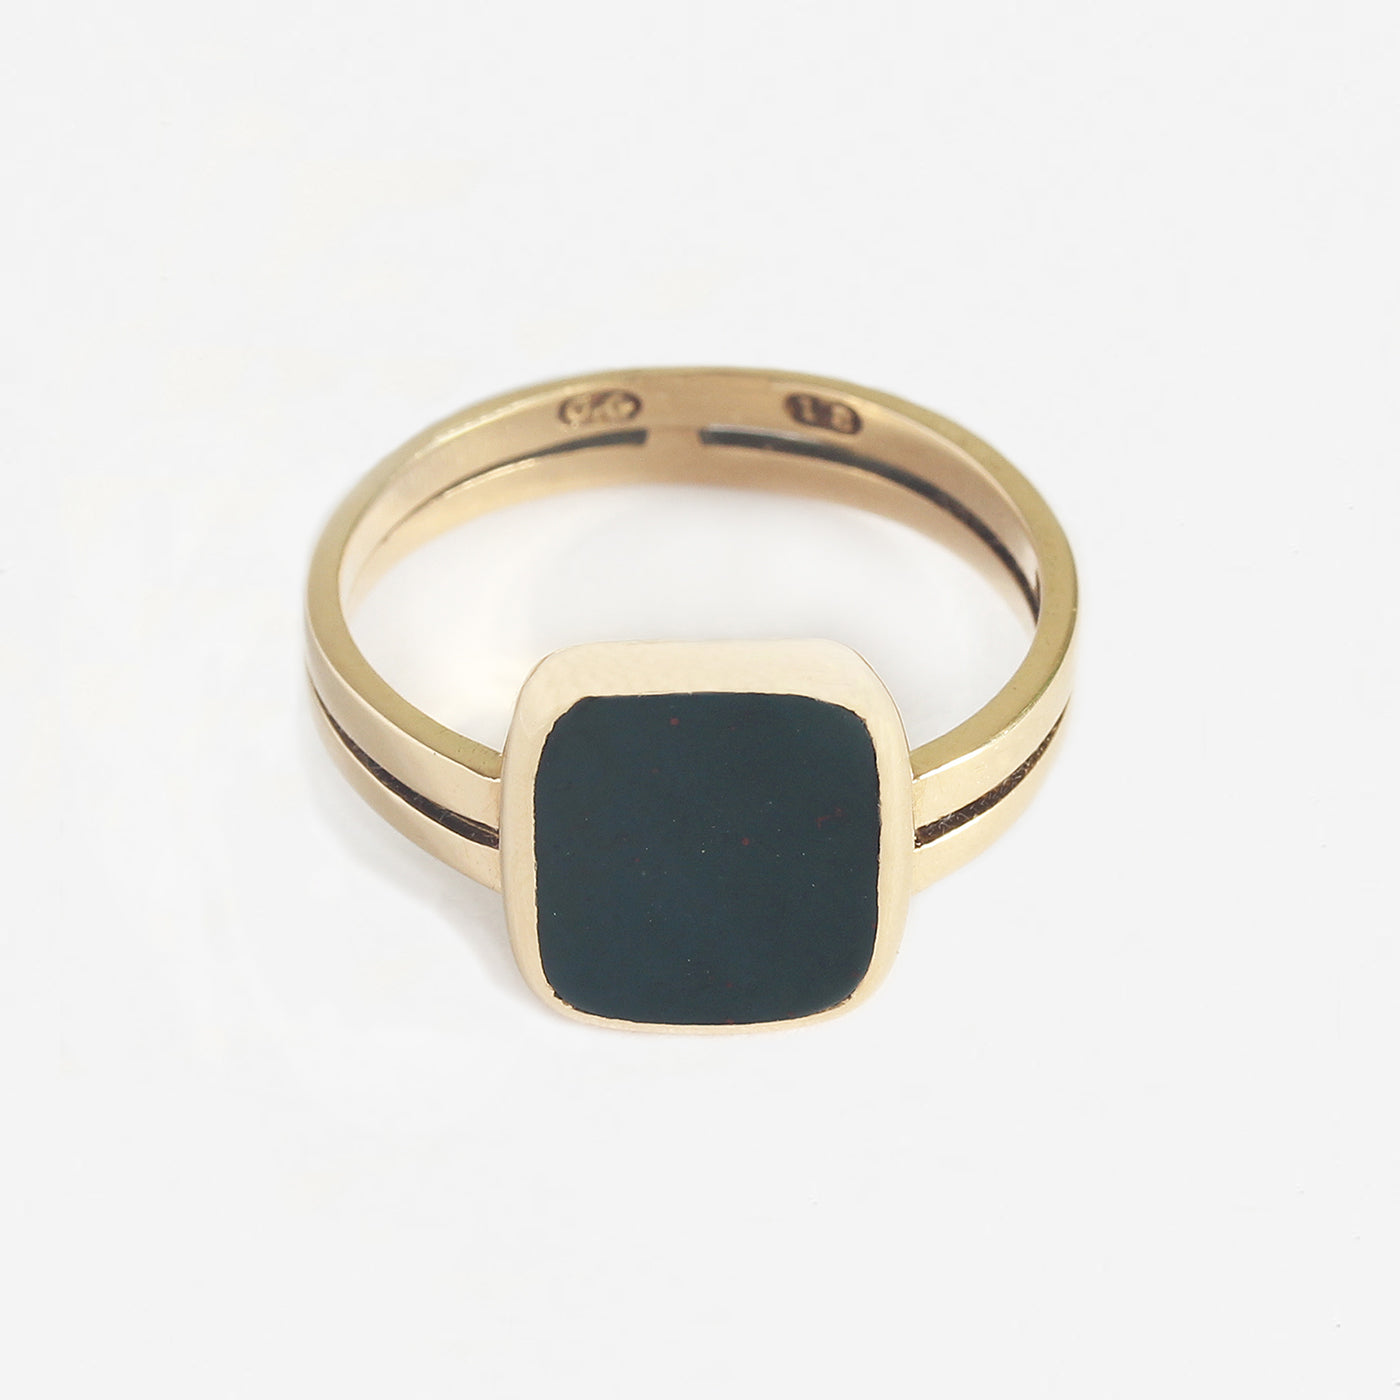 a secondhand vintage bloodstone rectangular signet ring in yellow gold with split shank